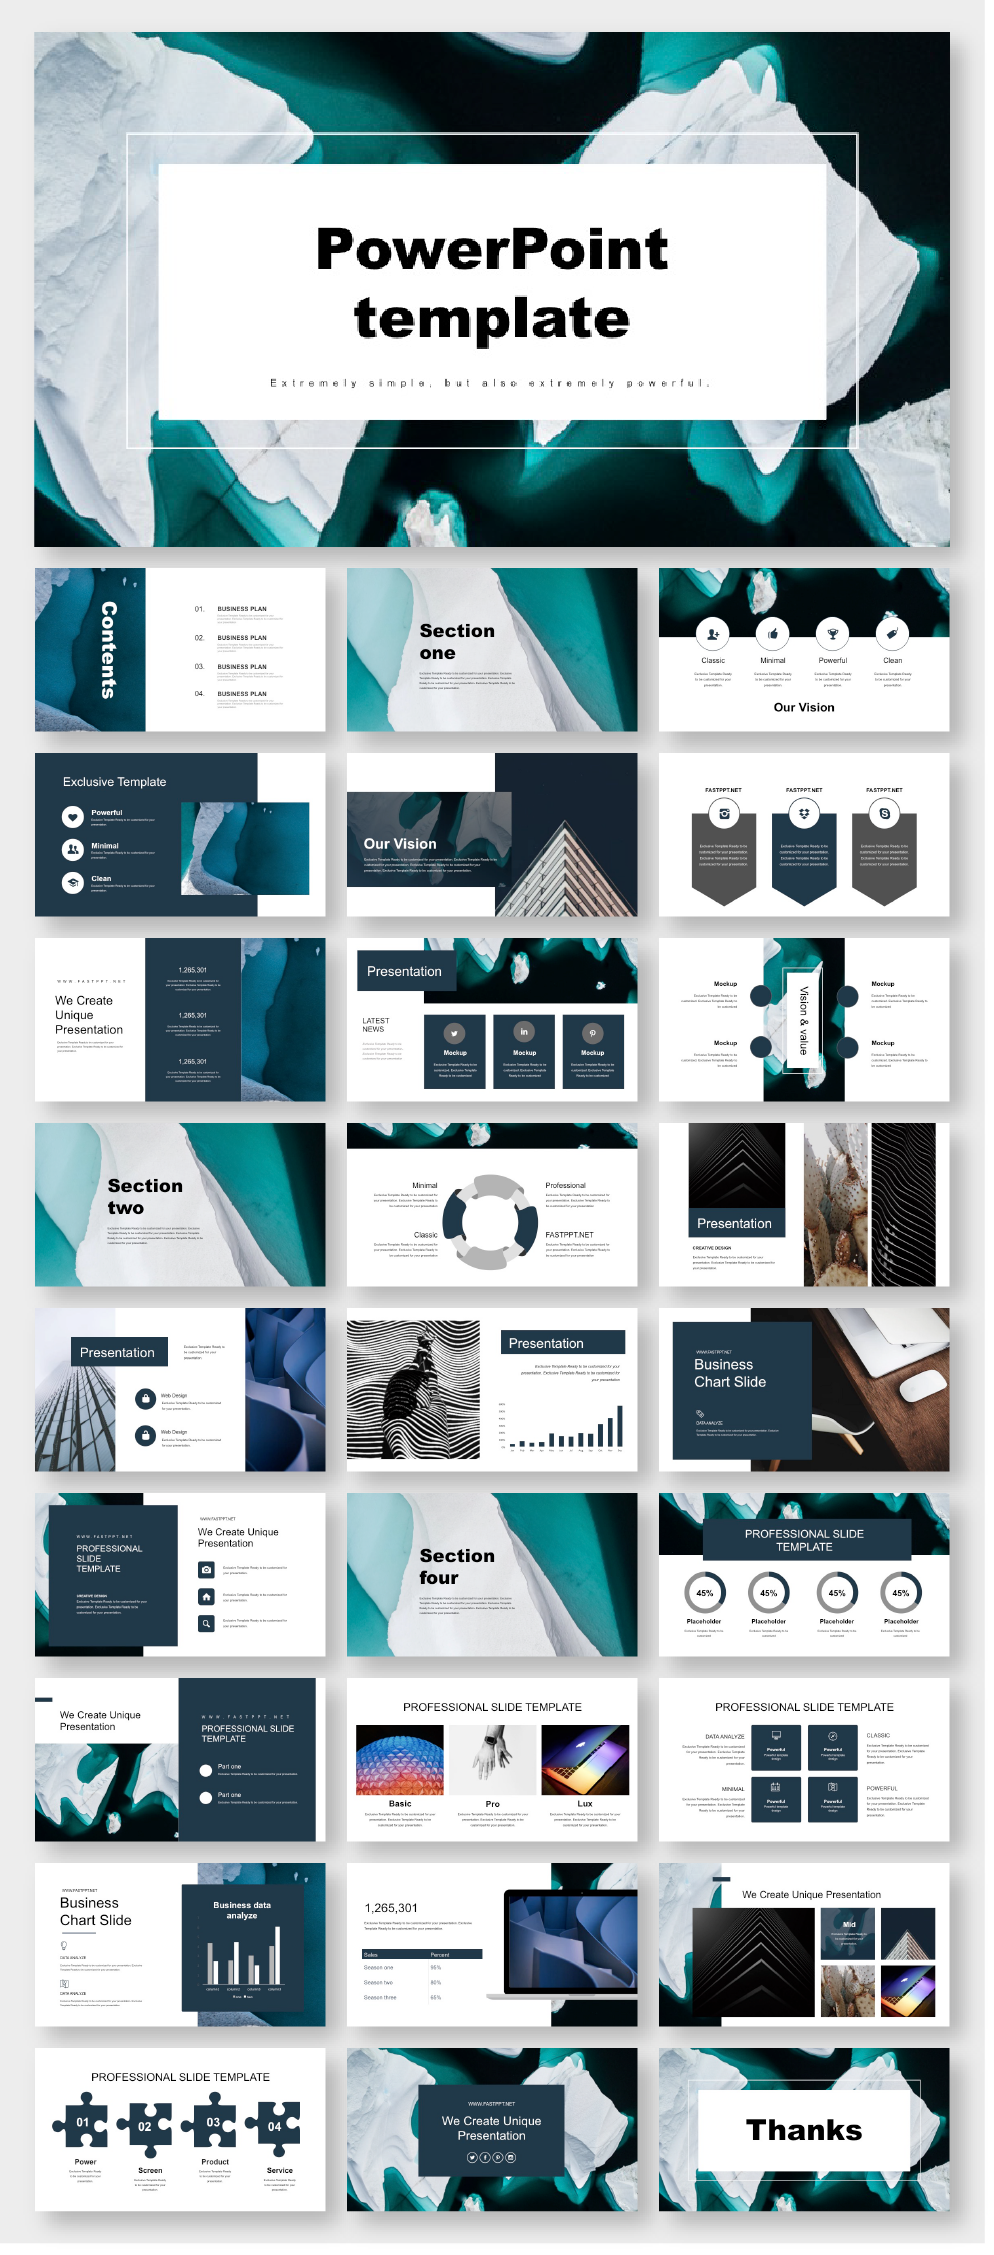 Business Plan Powerpoint Template Original And High Quality Powerpoint Templates Business Infographic Design Powerpoint Design Templates Powerpoint Templates